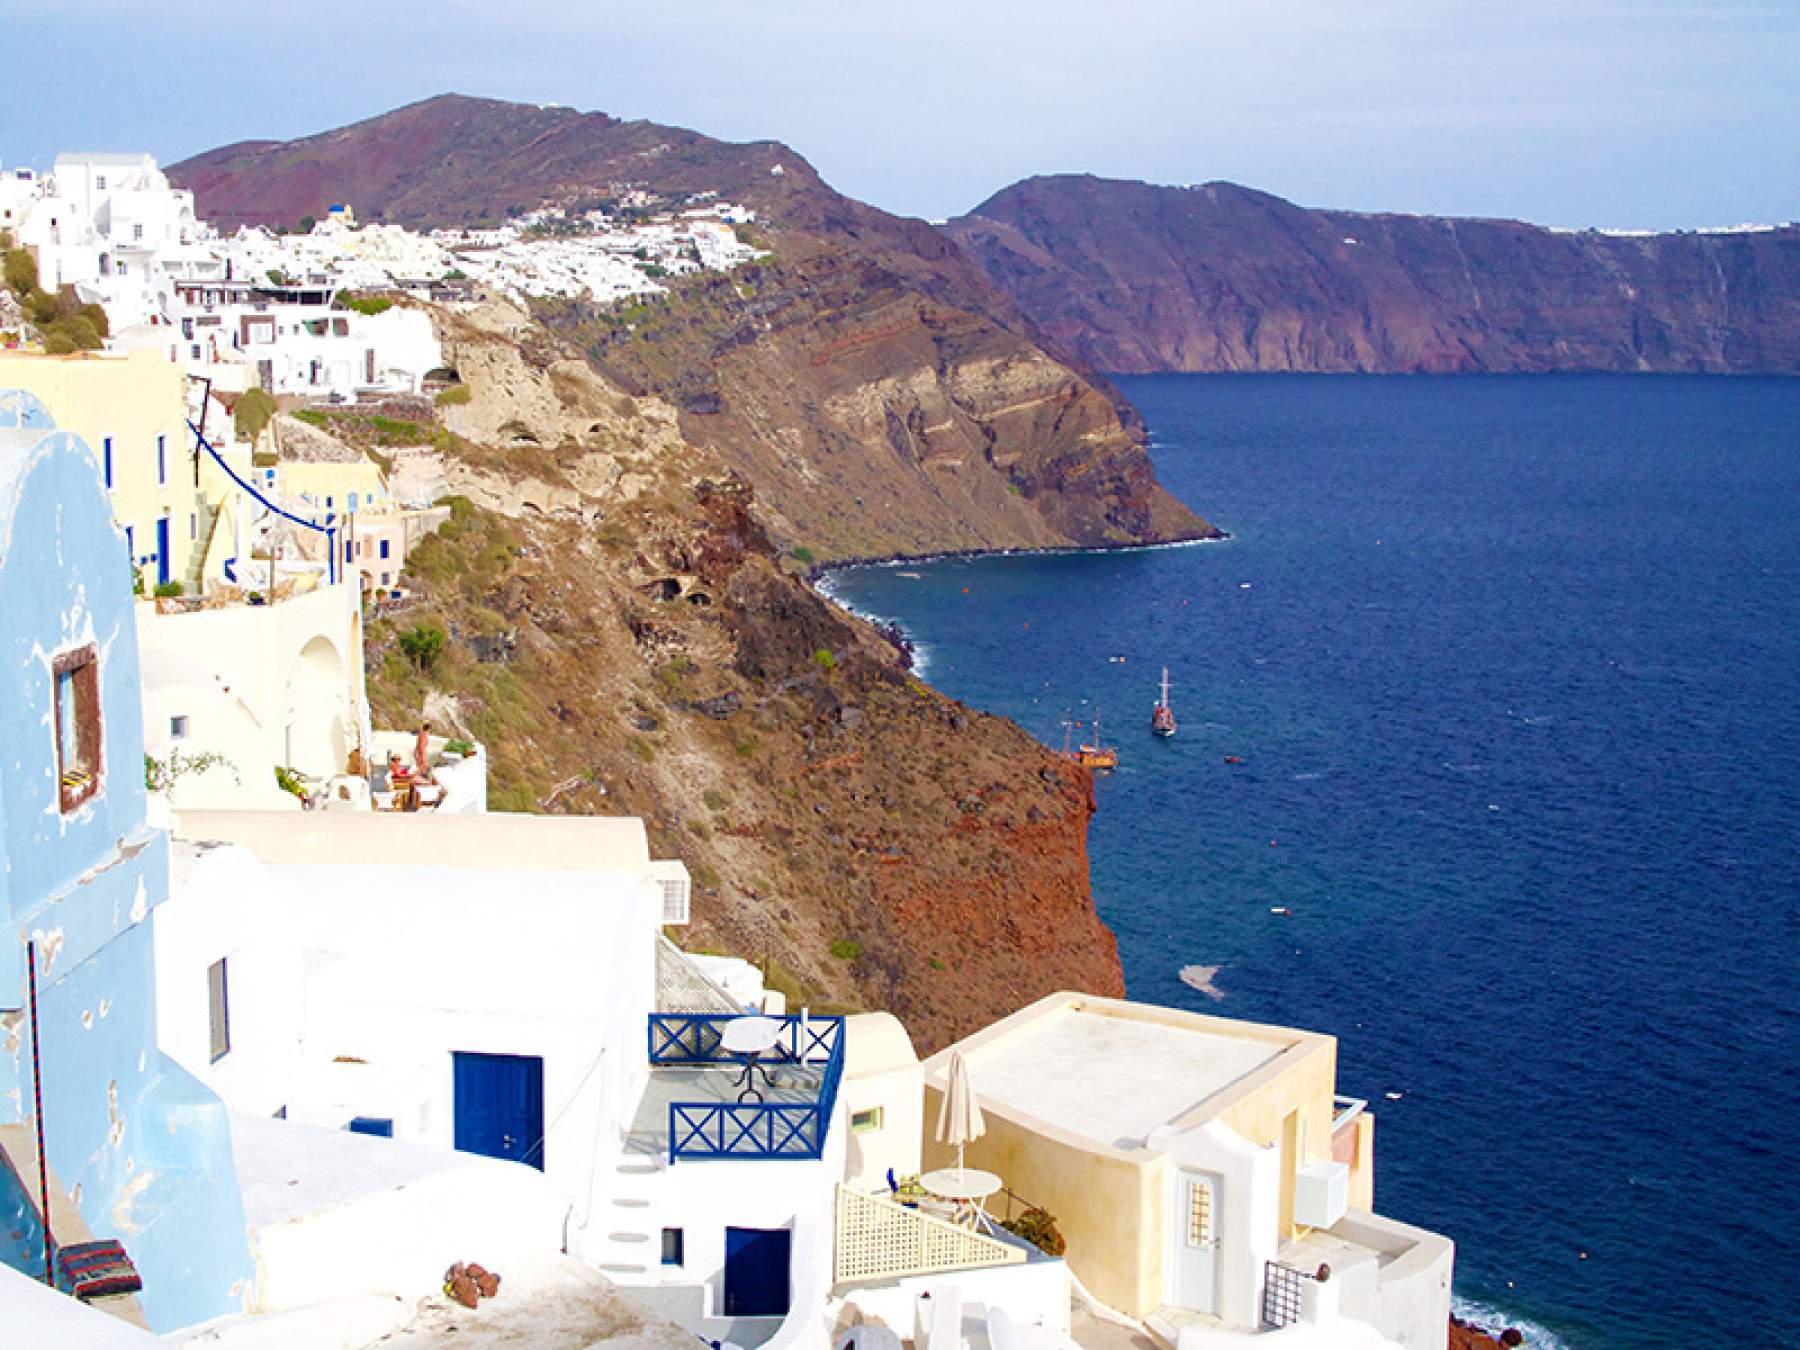 Santorini in the Cyclades, Greece